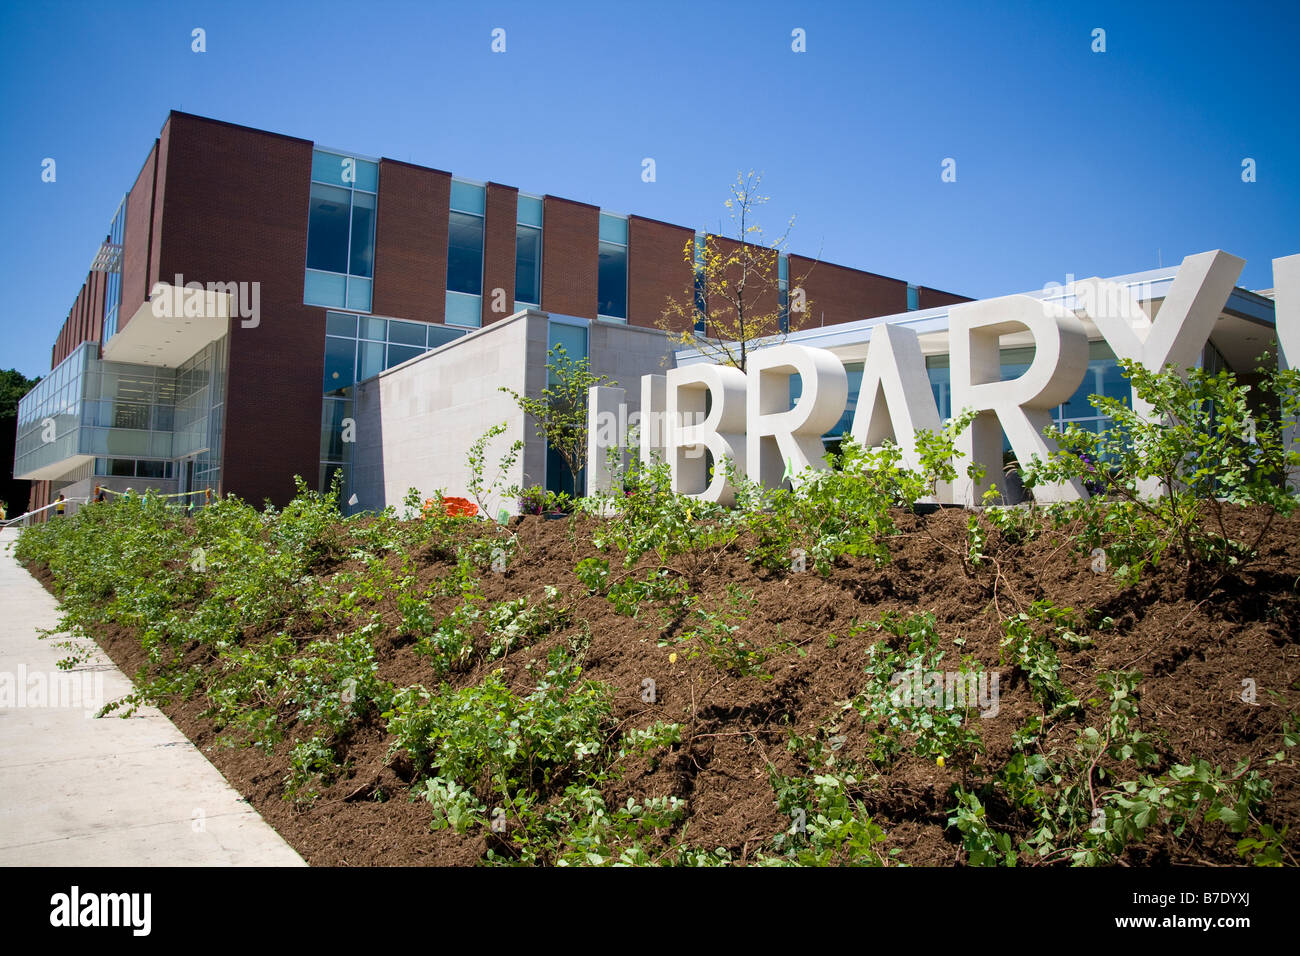 signage in block letters for the new modern public library building in champaign illinois